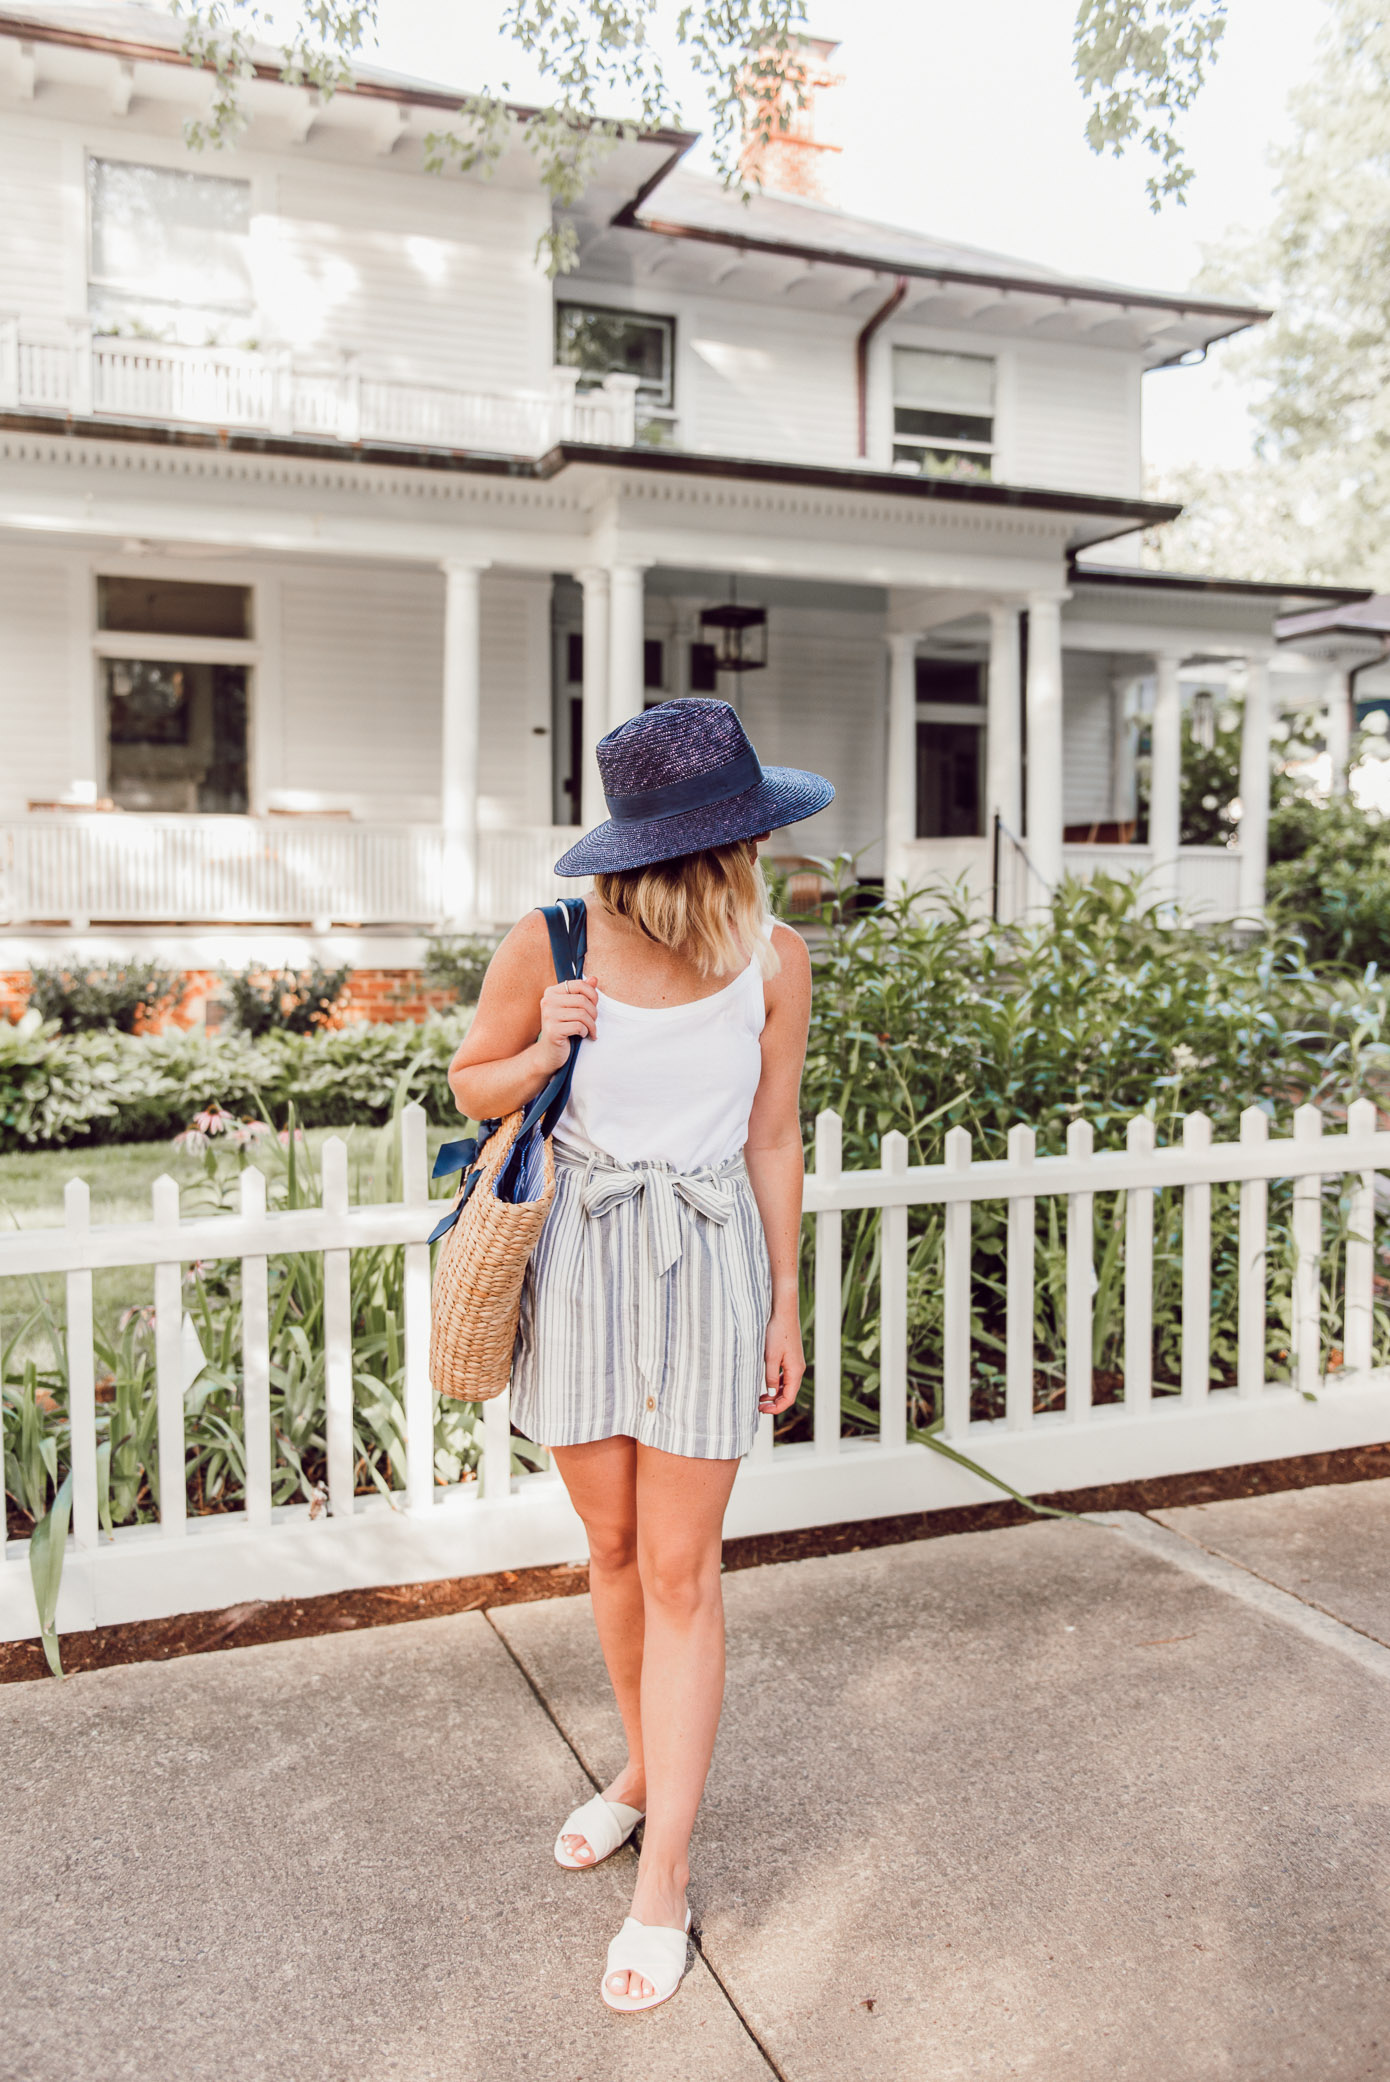 Casual Summer Outfit Idea | Cotton Cami, Linen Striped Skirt, Navy Straw Hat under $50 | Louella Reese